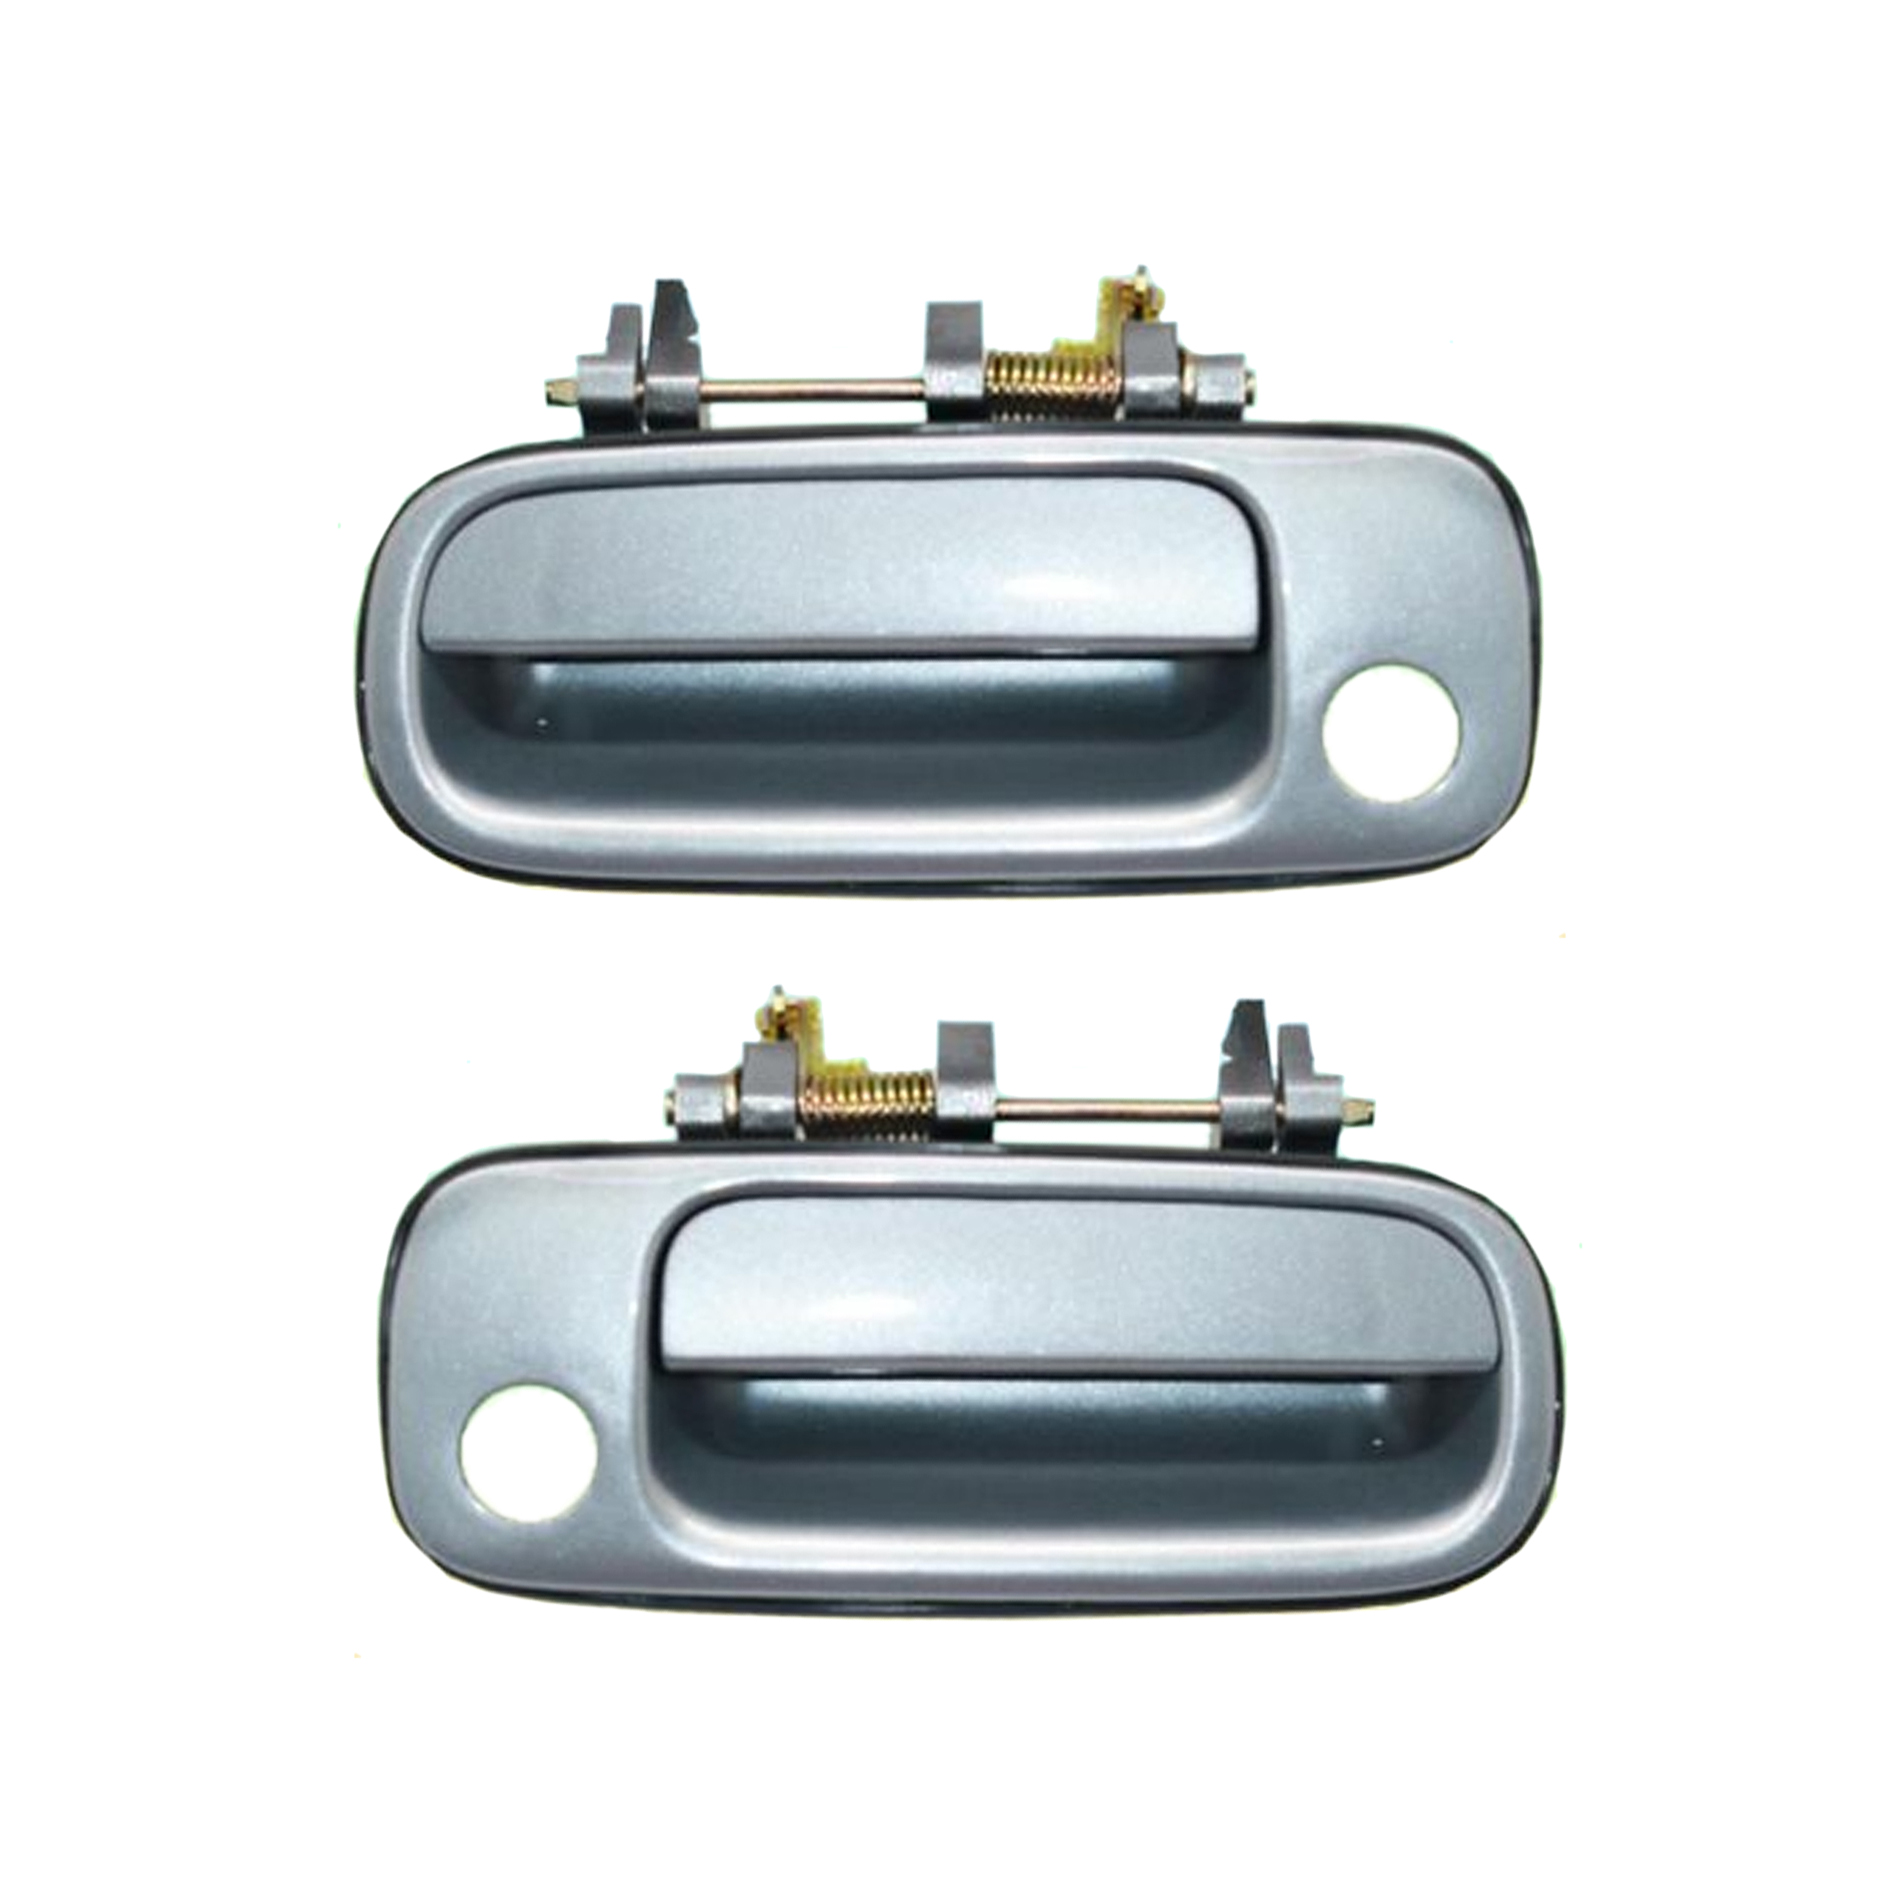 Brand New For 1992-1996 Toyota Camry Blue 1A0 Outside Door Handle Front Right Passenger Side and Left 92 93 94 95 96